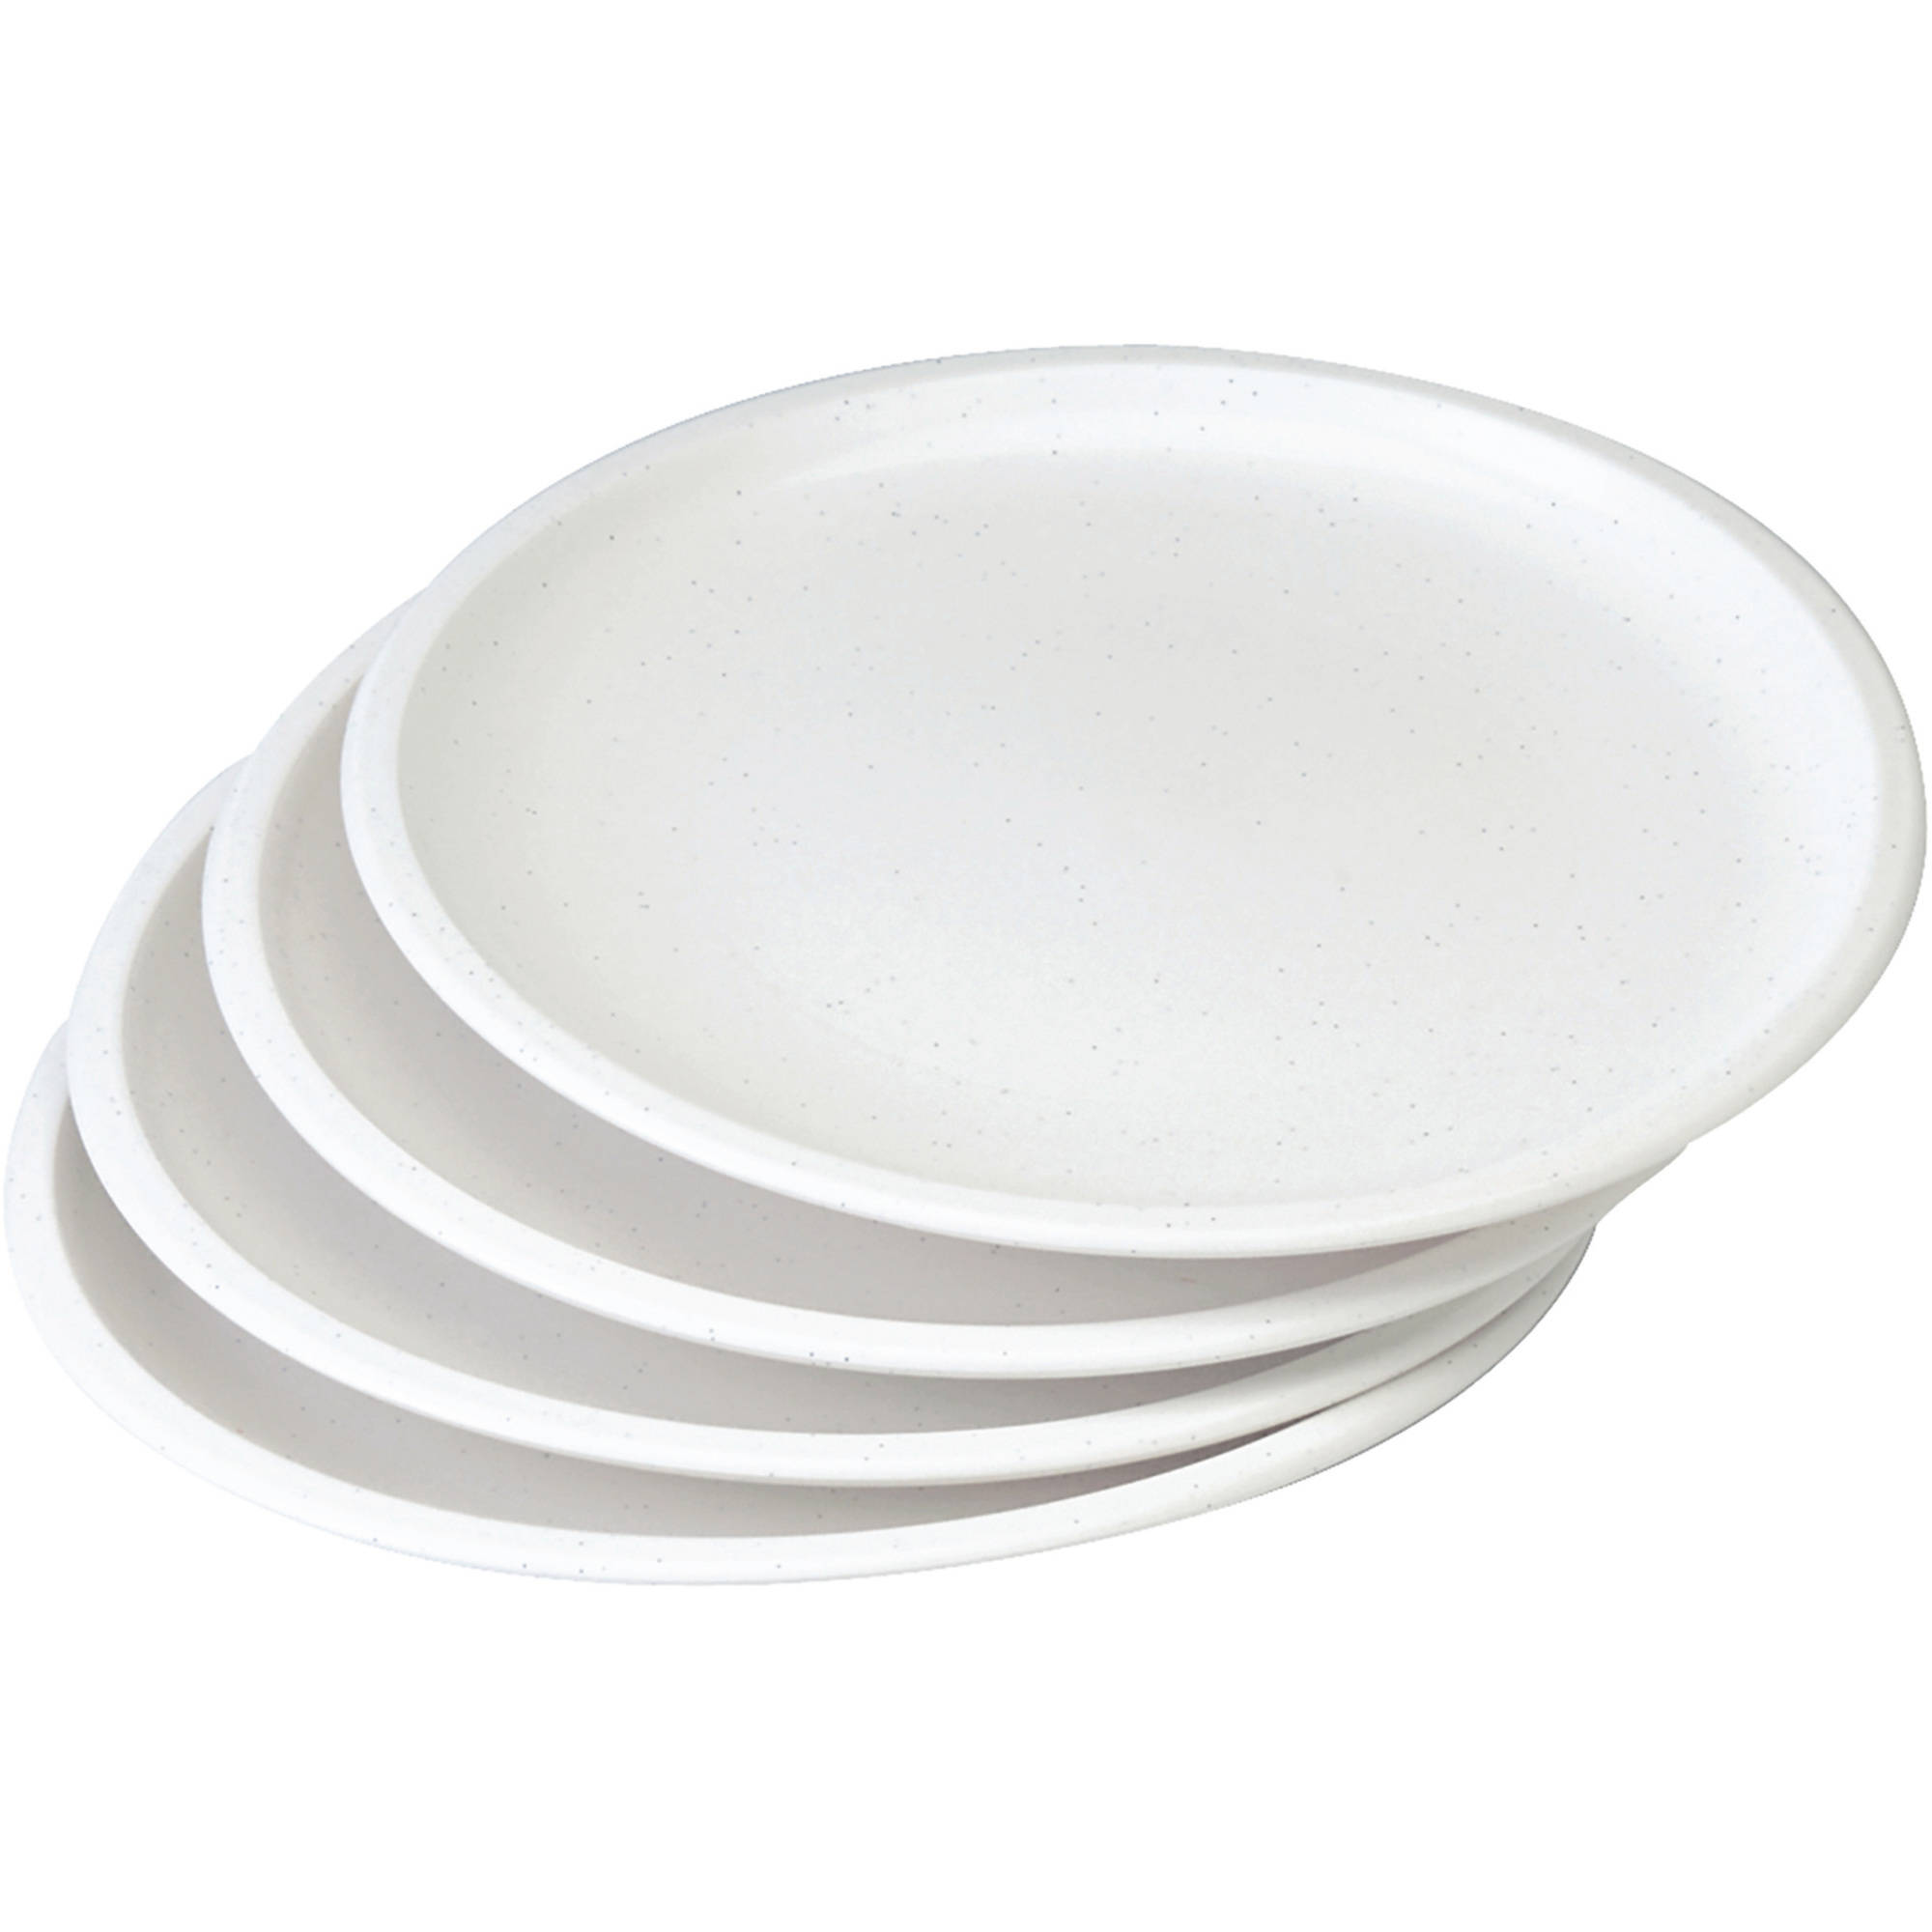 Microwave Plate Prep Solutions By Progressive Microwave Plates Set Of 4